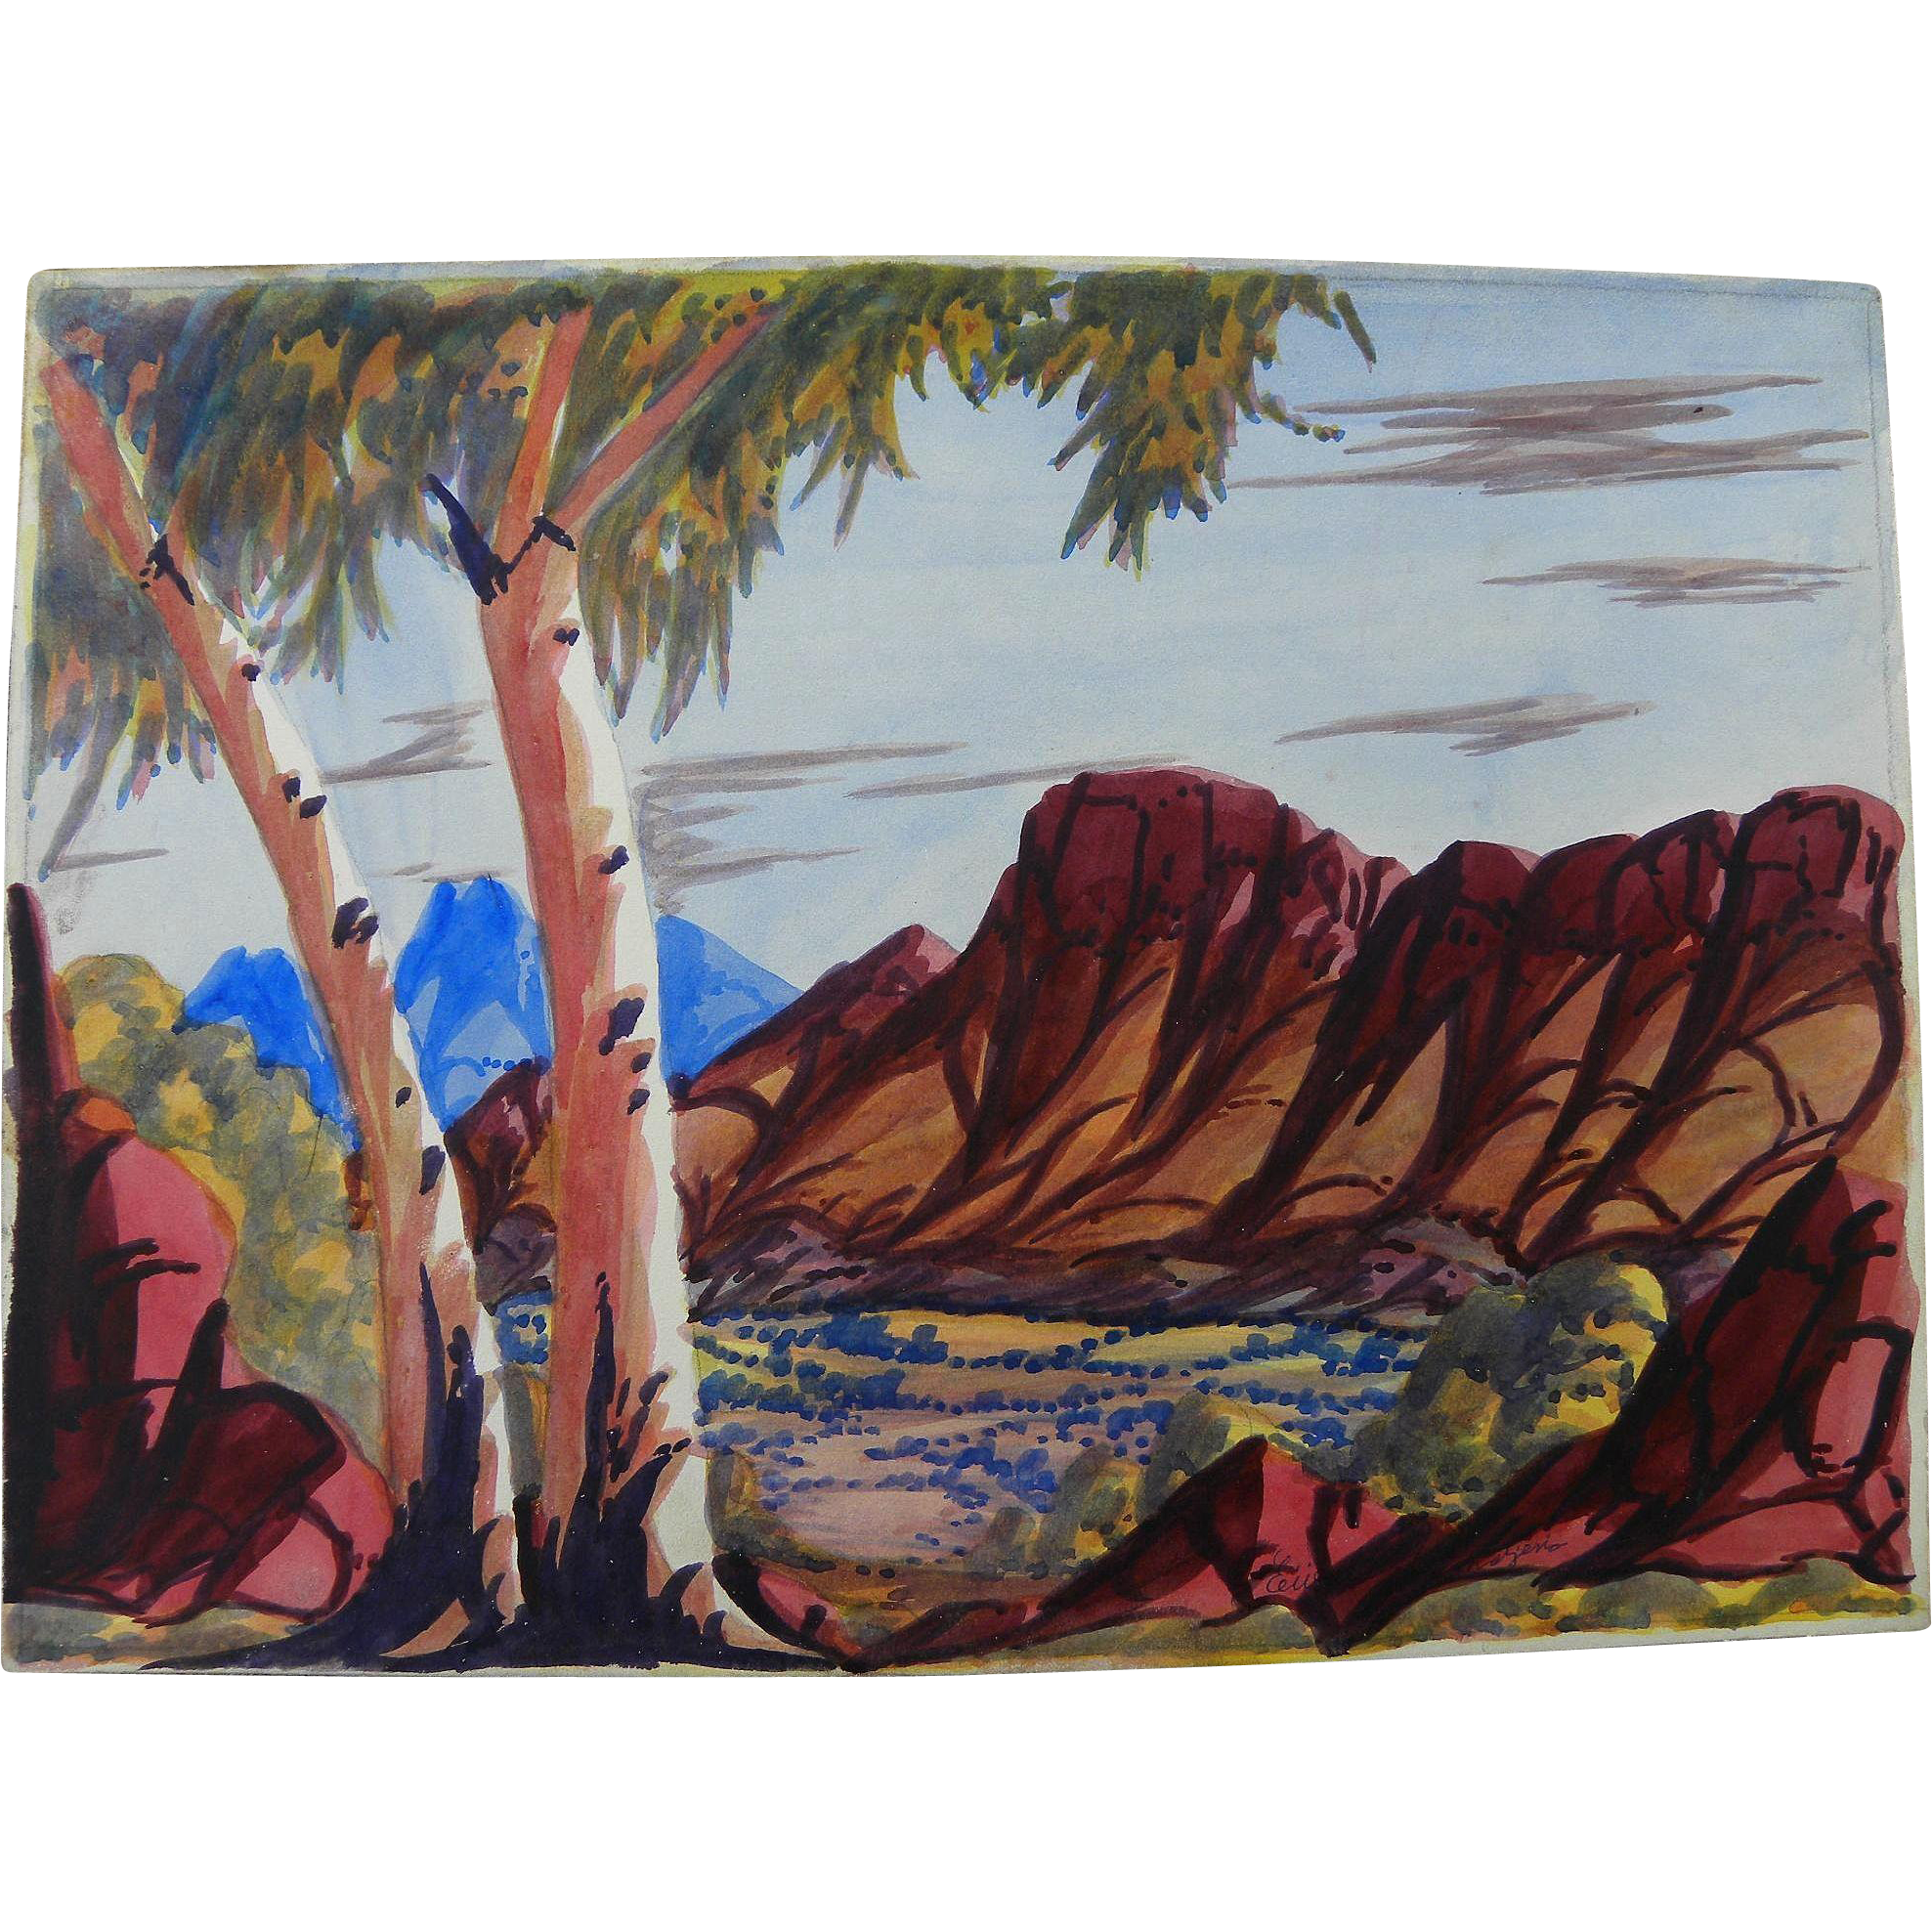 EWALD NAMATJIRA (1930-1984) Australian aboriginal art watercolor painting of Central Australia landscape